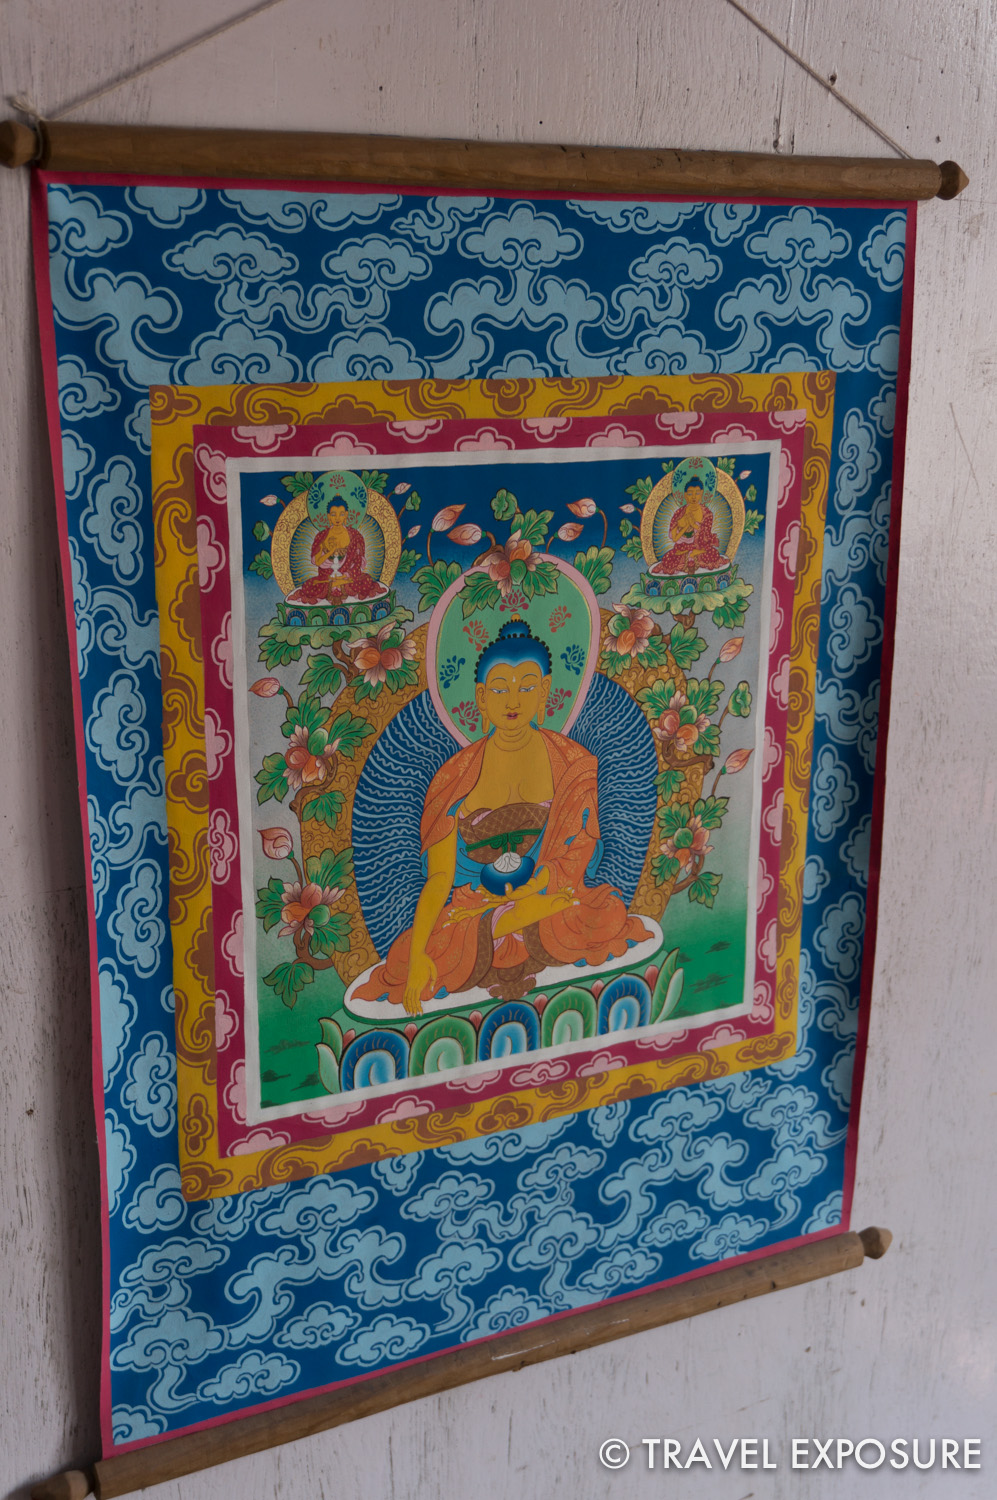 A thangka painting in Gangtok, Sikkim. A Thangka is a painting typically portraying a   Buddhist deity, scene, or mandala.